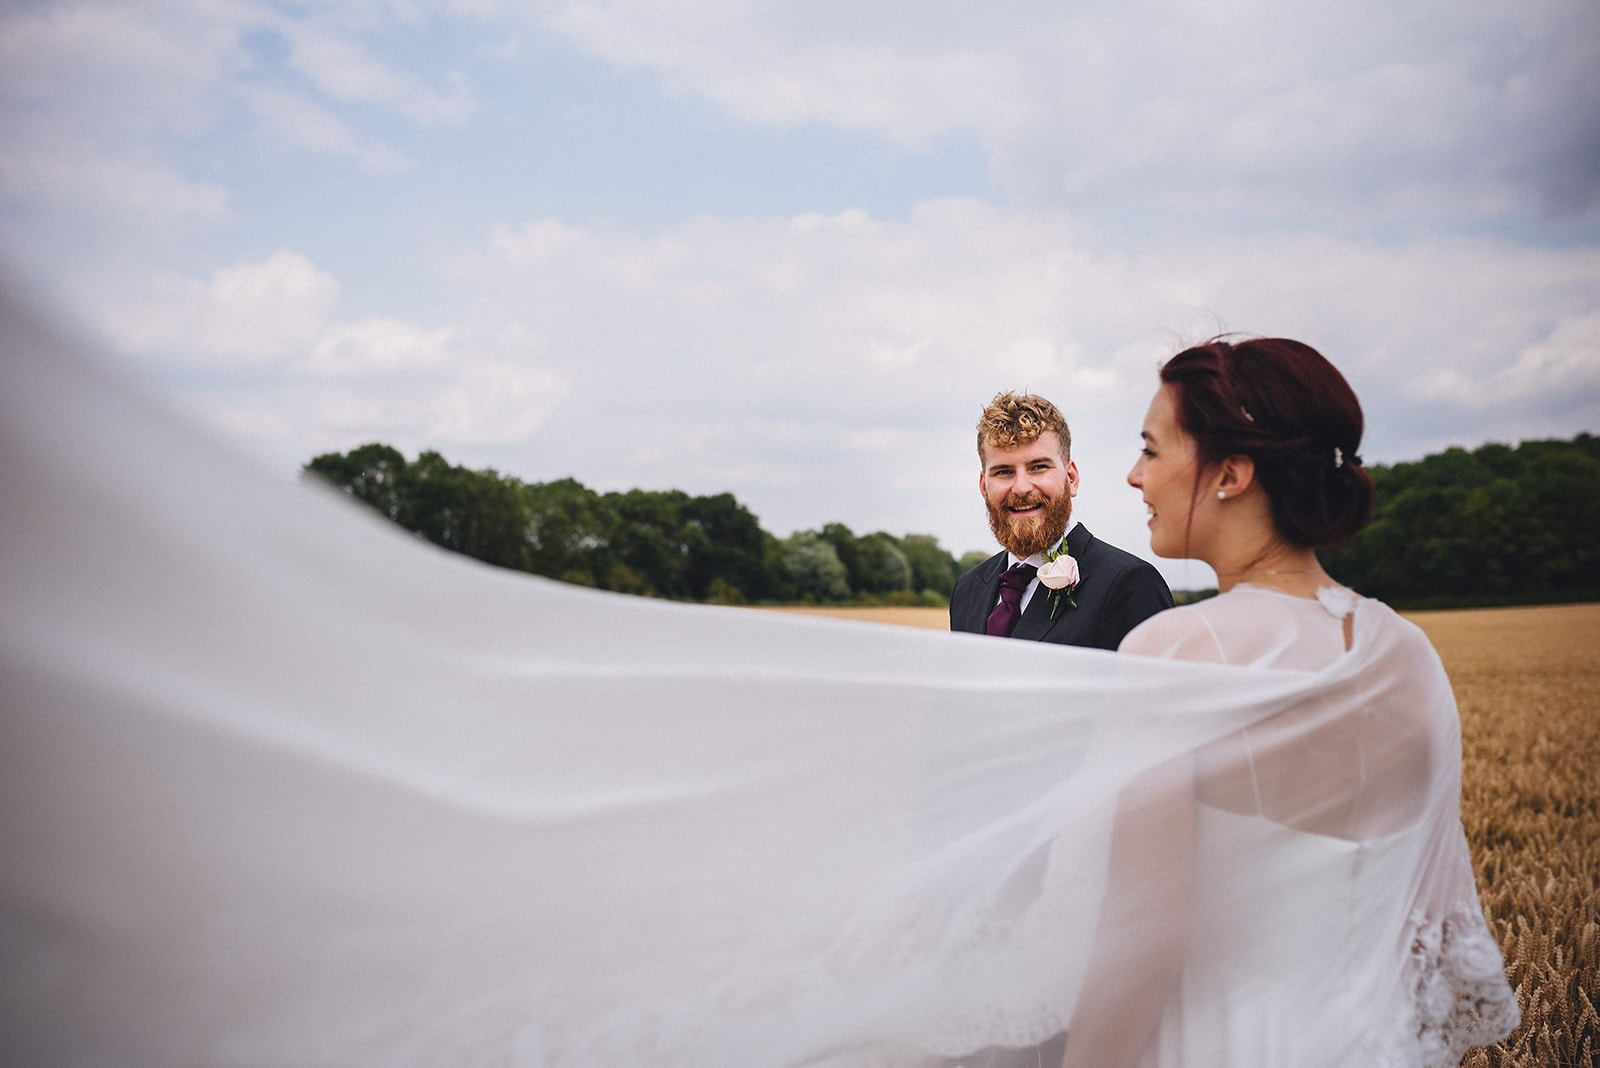 Groom lovingly looking at the bride as her veil blows across the field